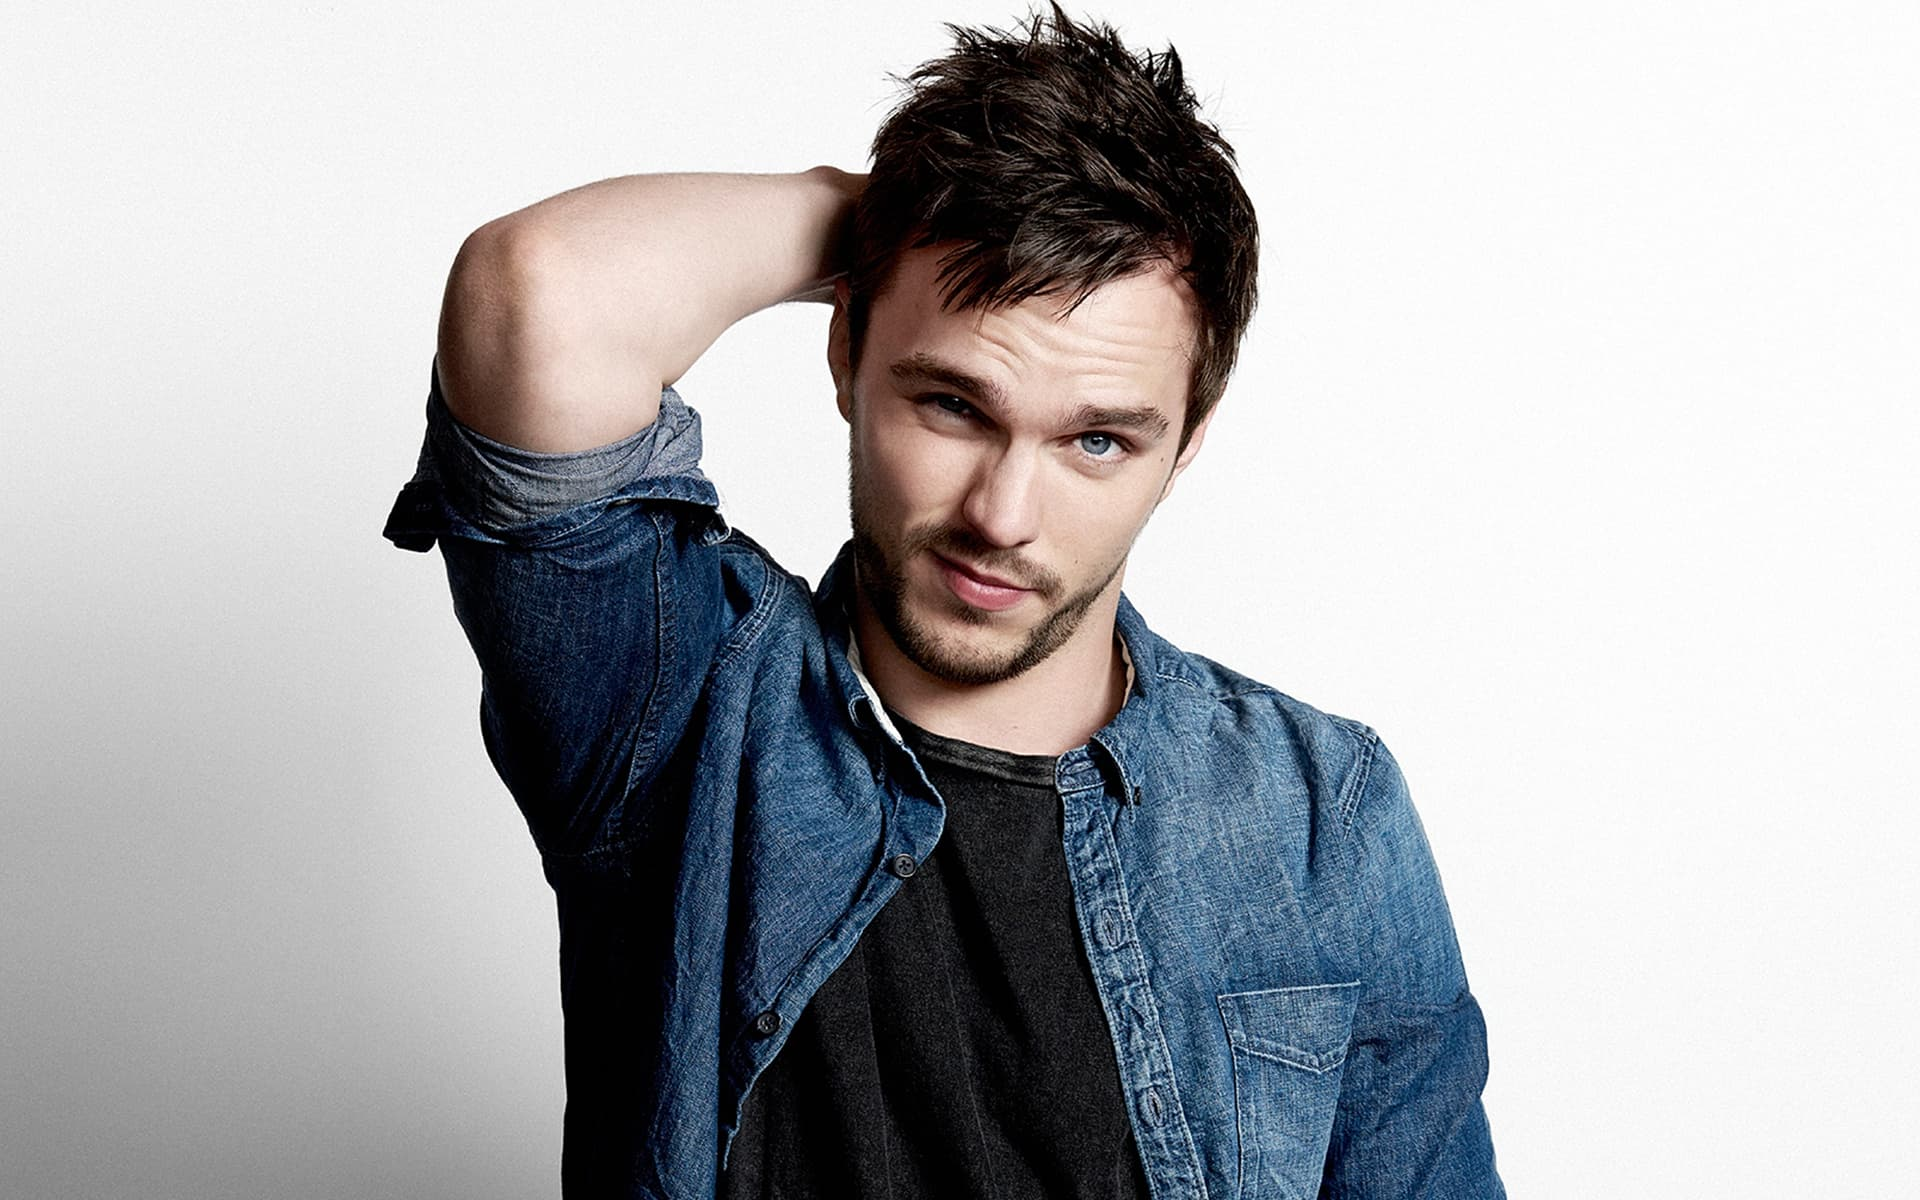 nicholas hoult wallpaper background - photo #20